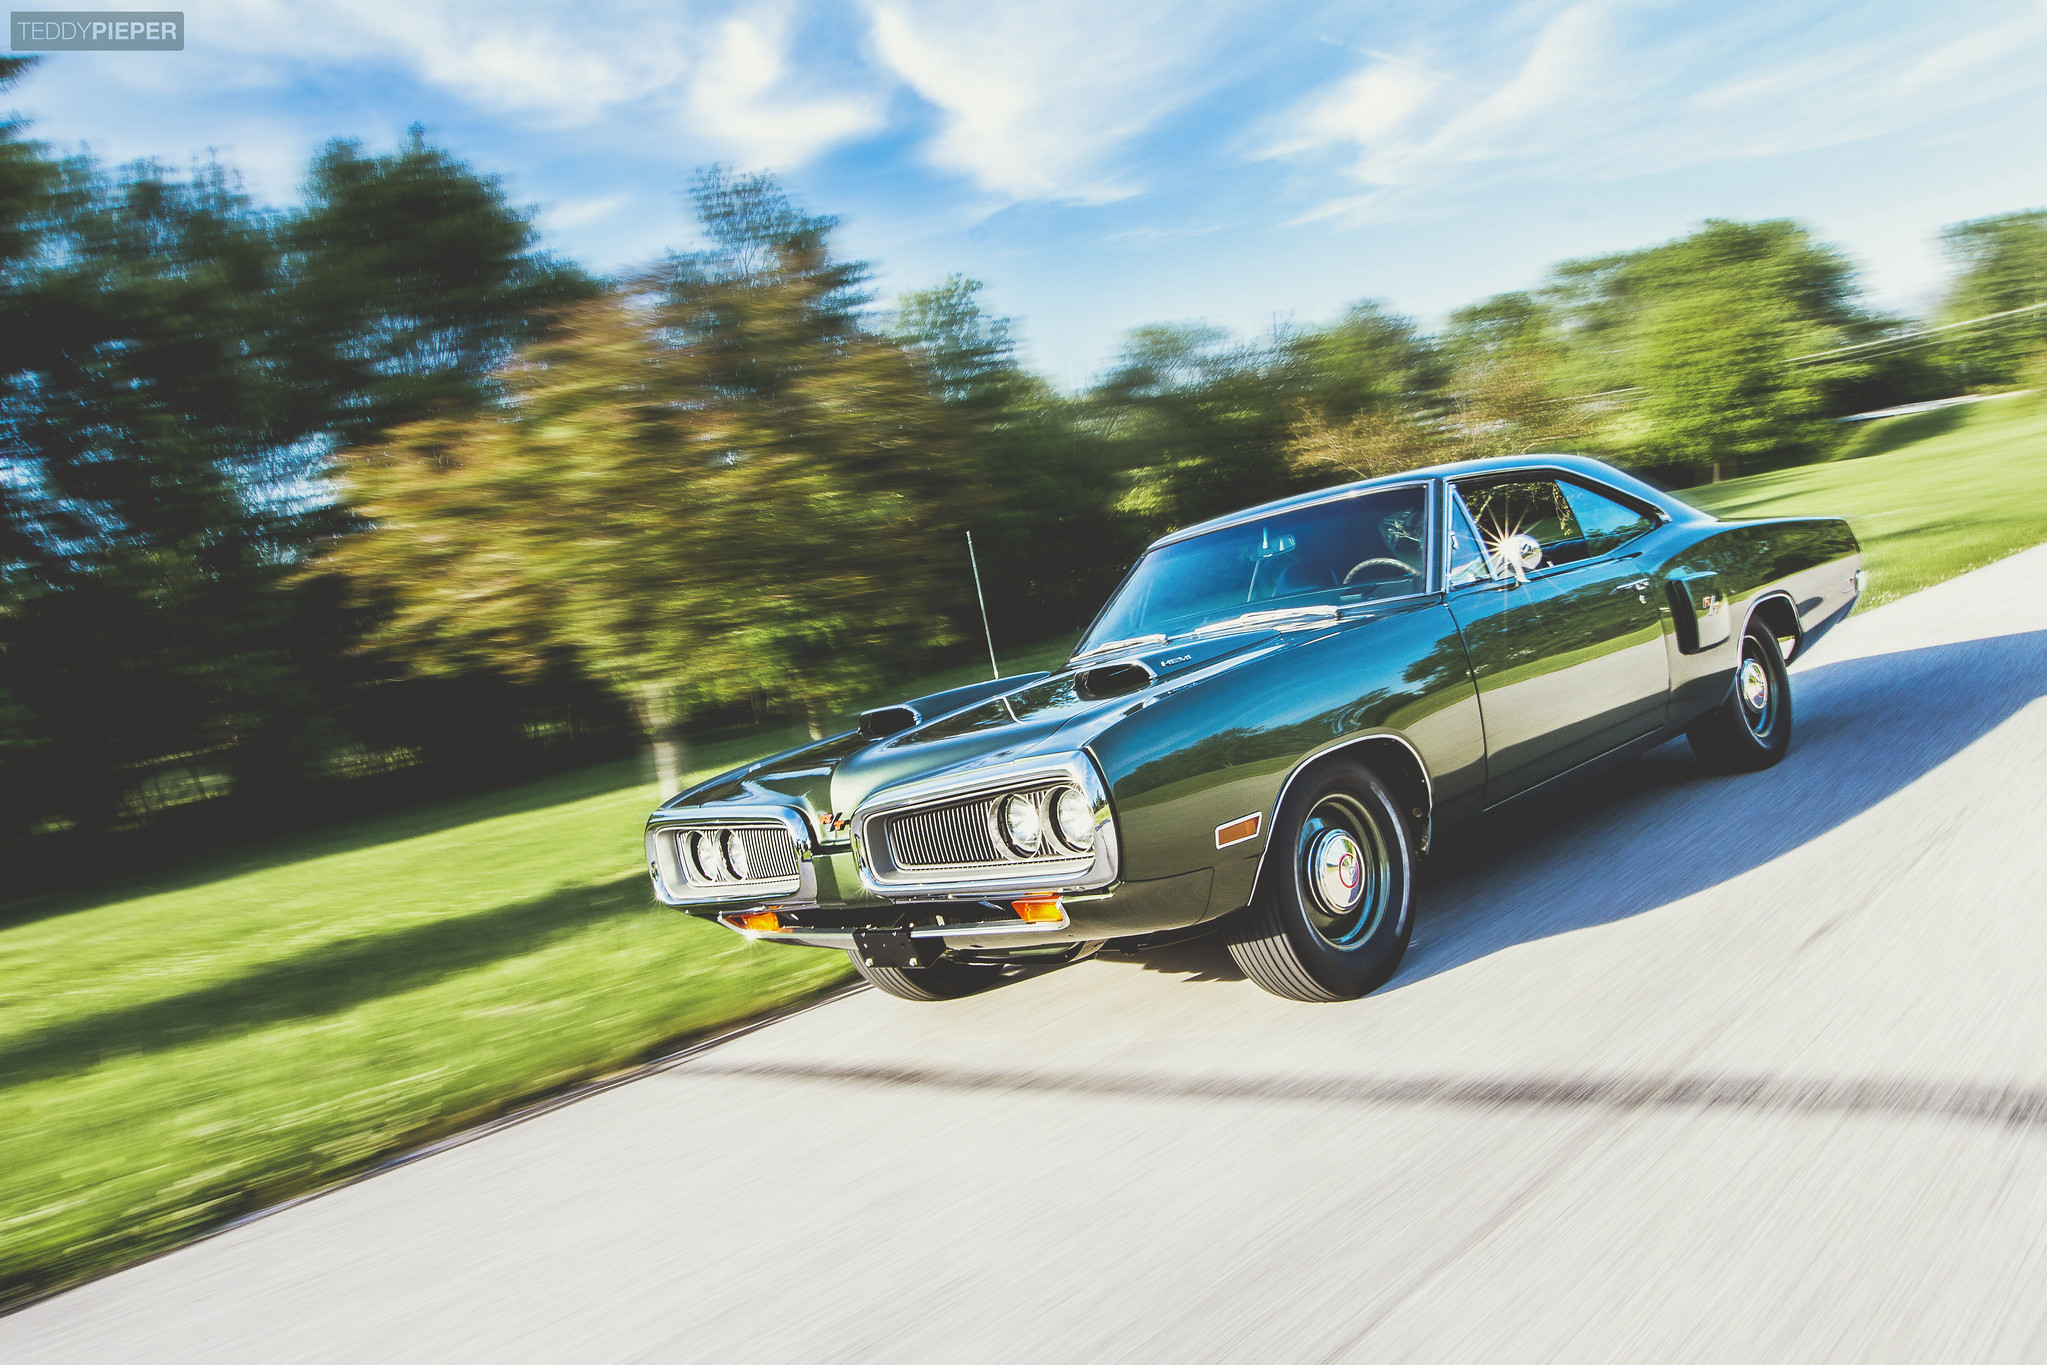 1970 Dodge Hemi Coronet R/T | Teddy Pieper Photography & Design